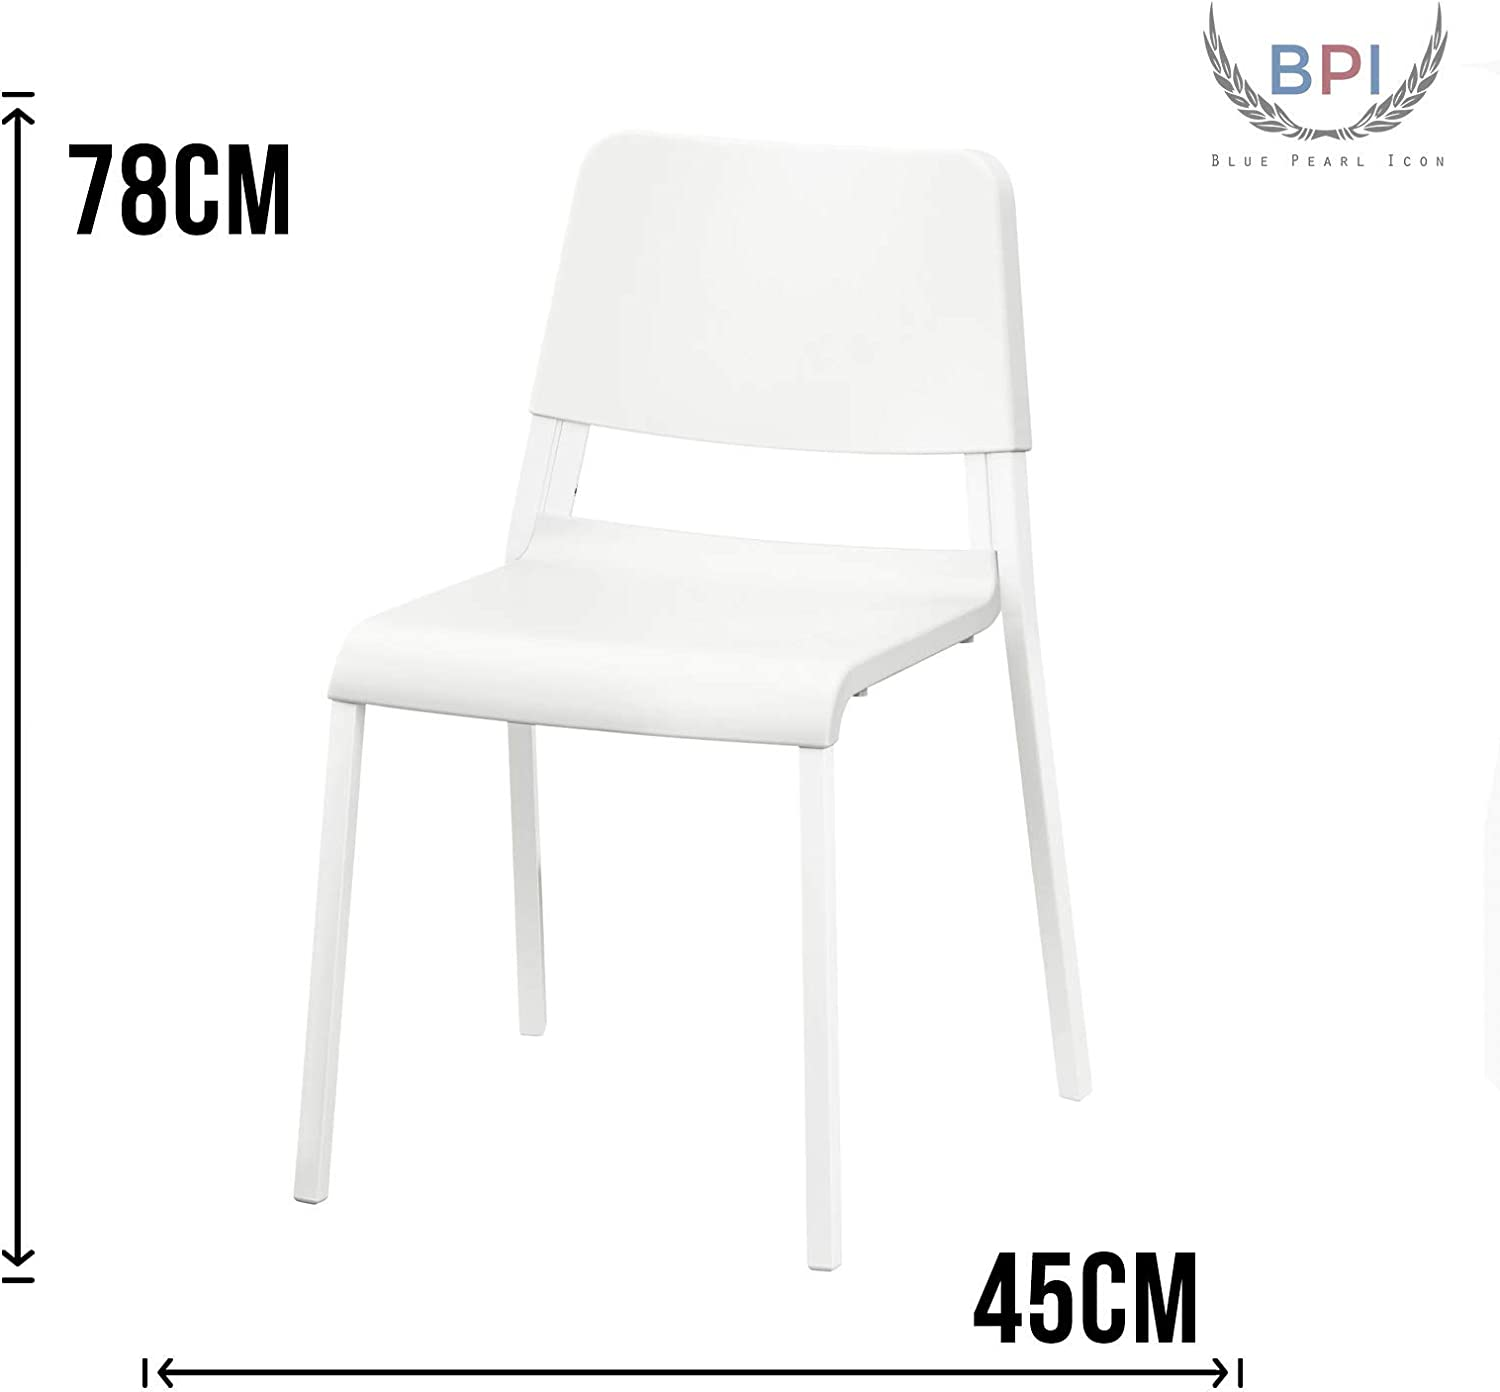 BPIL New IKEA TEODORES - Silla de jardín (45 x 78 cm), Color Blanco: Amazon.es: Hogar